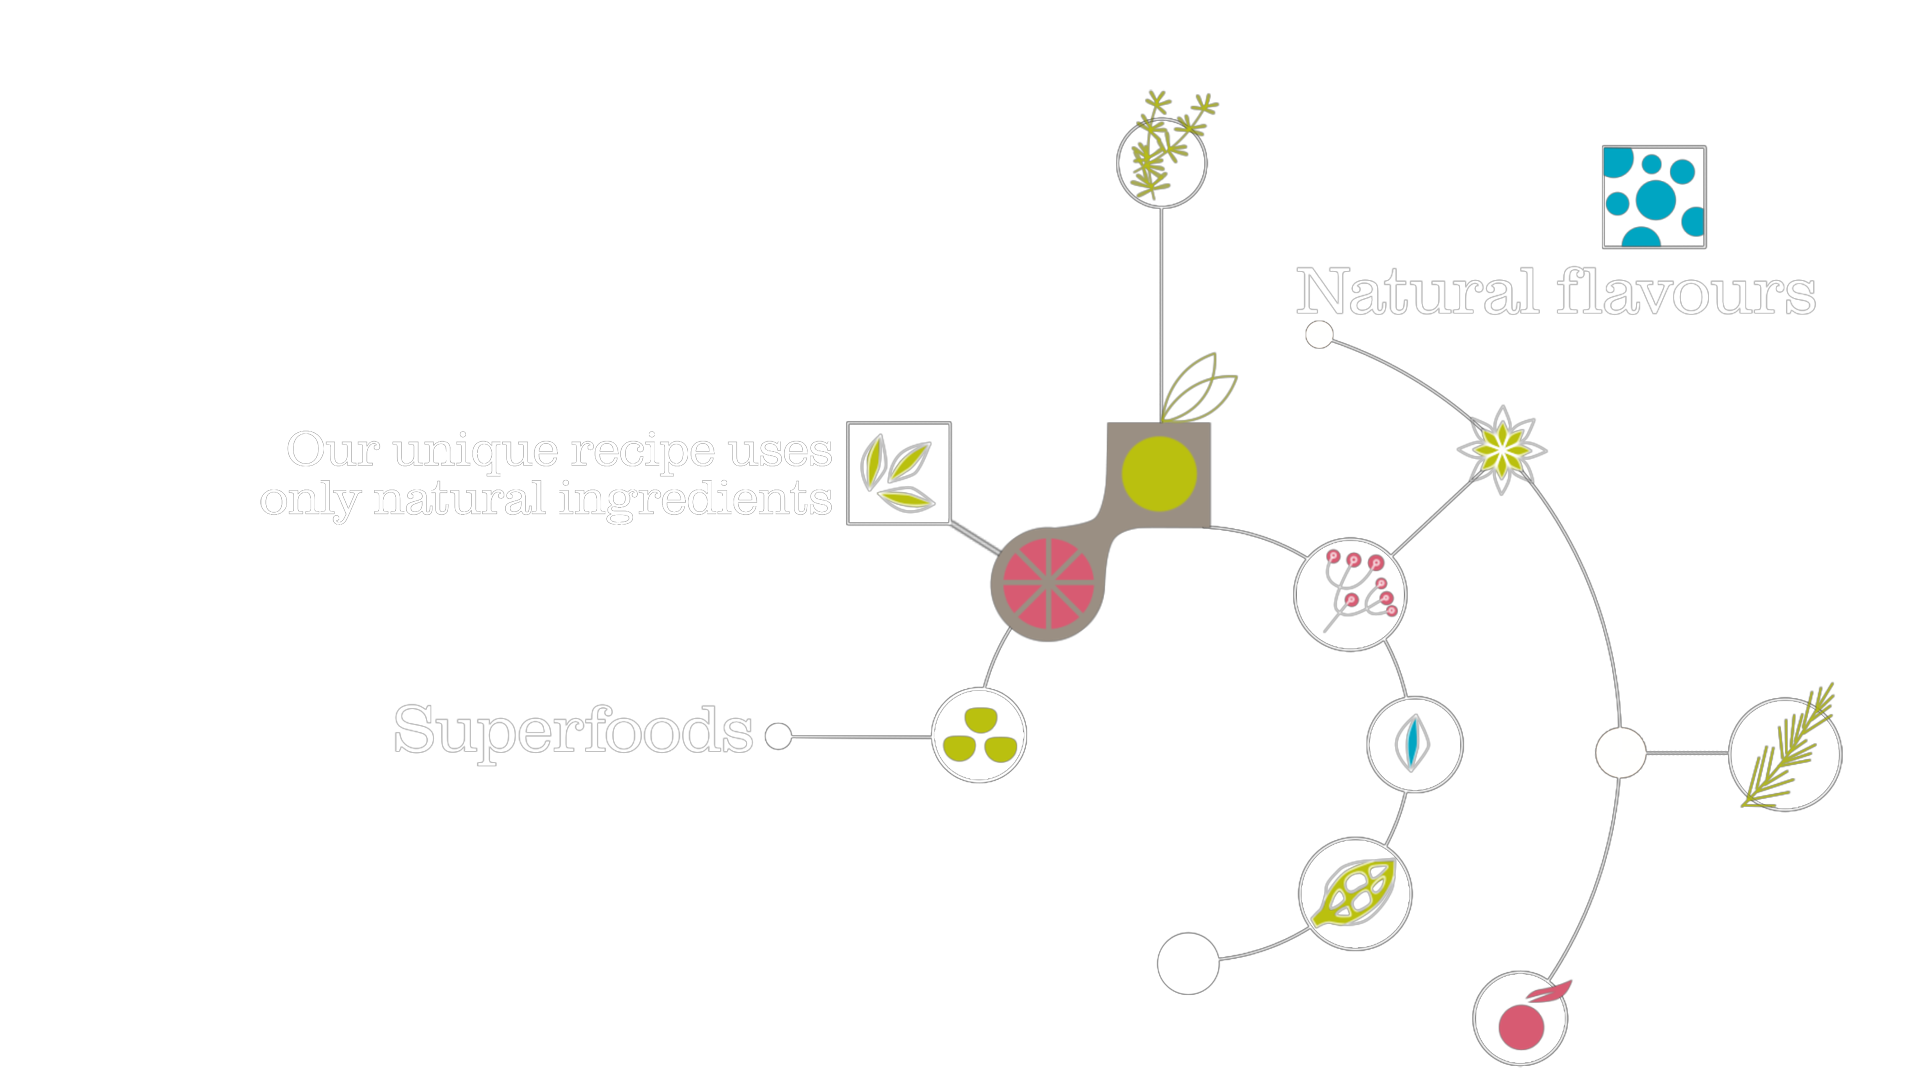 Our unique recipe uses only natural ingredients